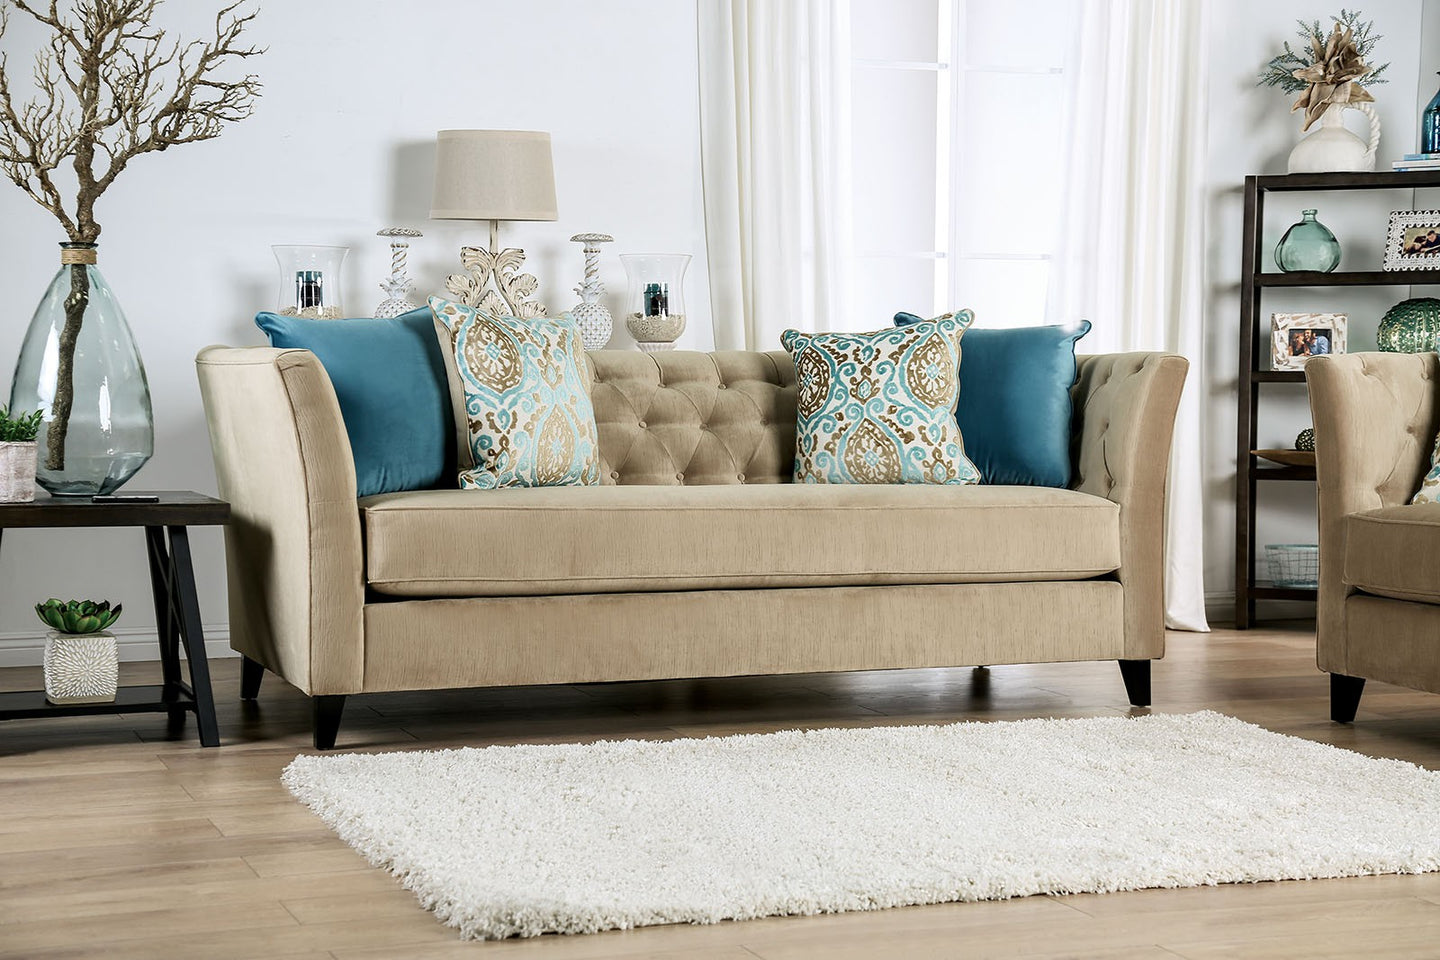 Furniture of America Monaghan Camel Chenille Upholstery Sofa